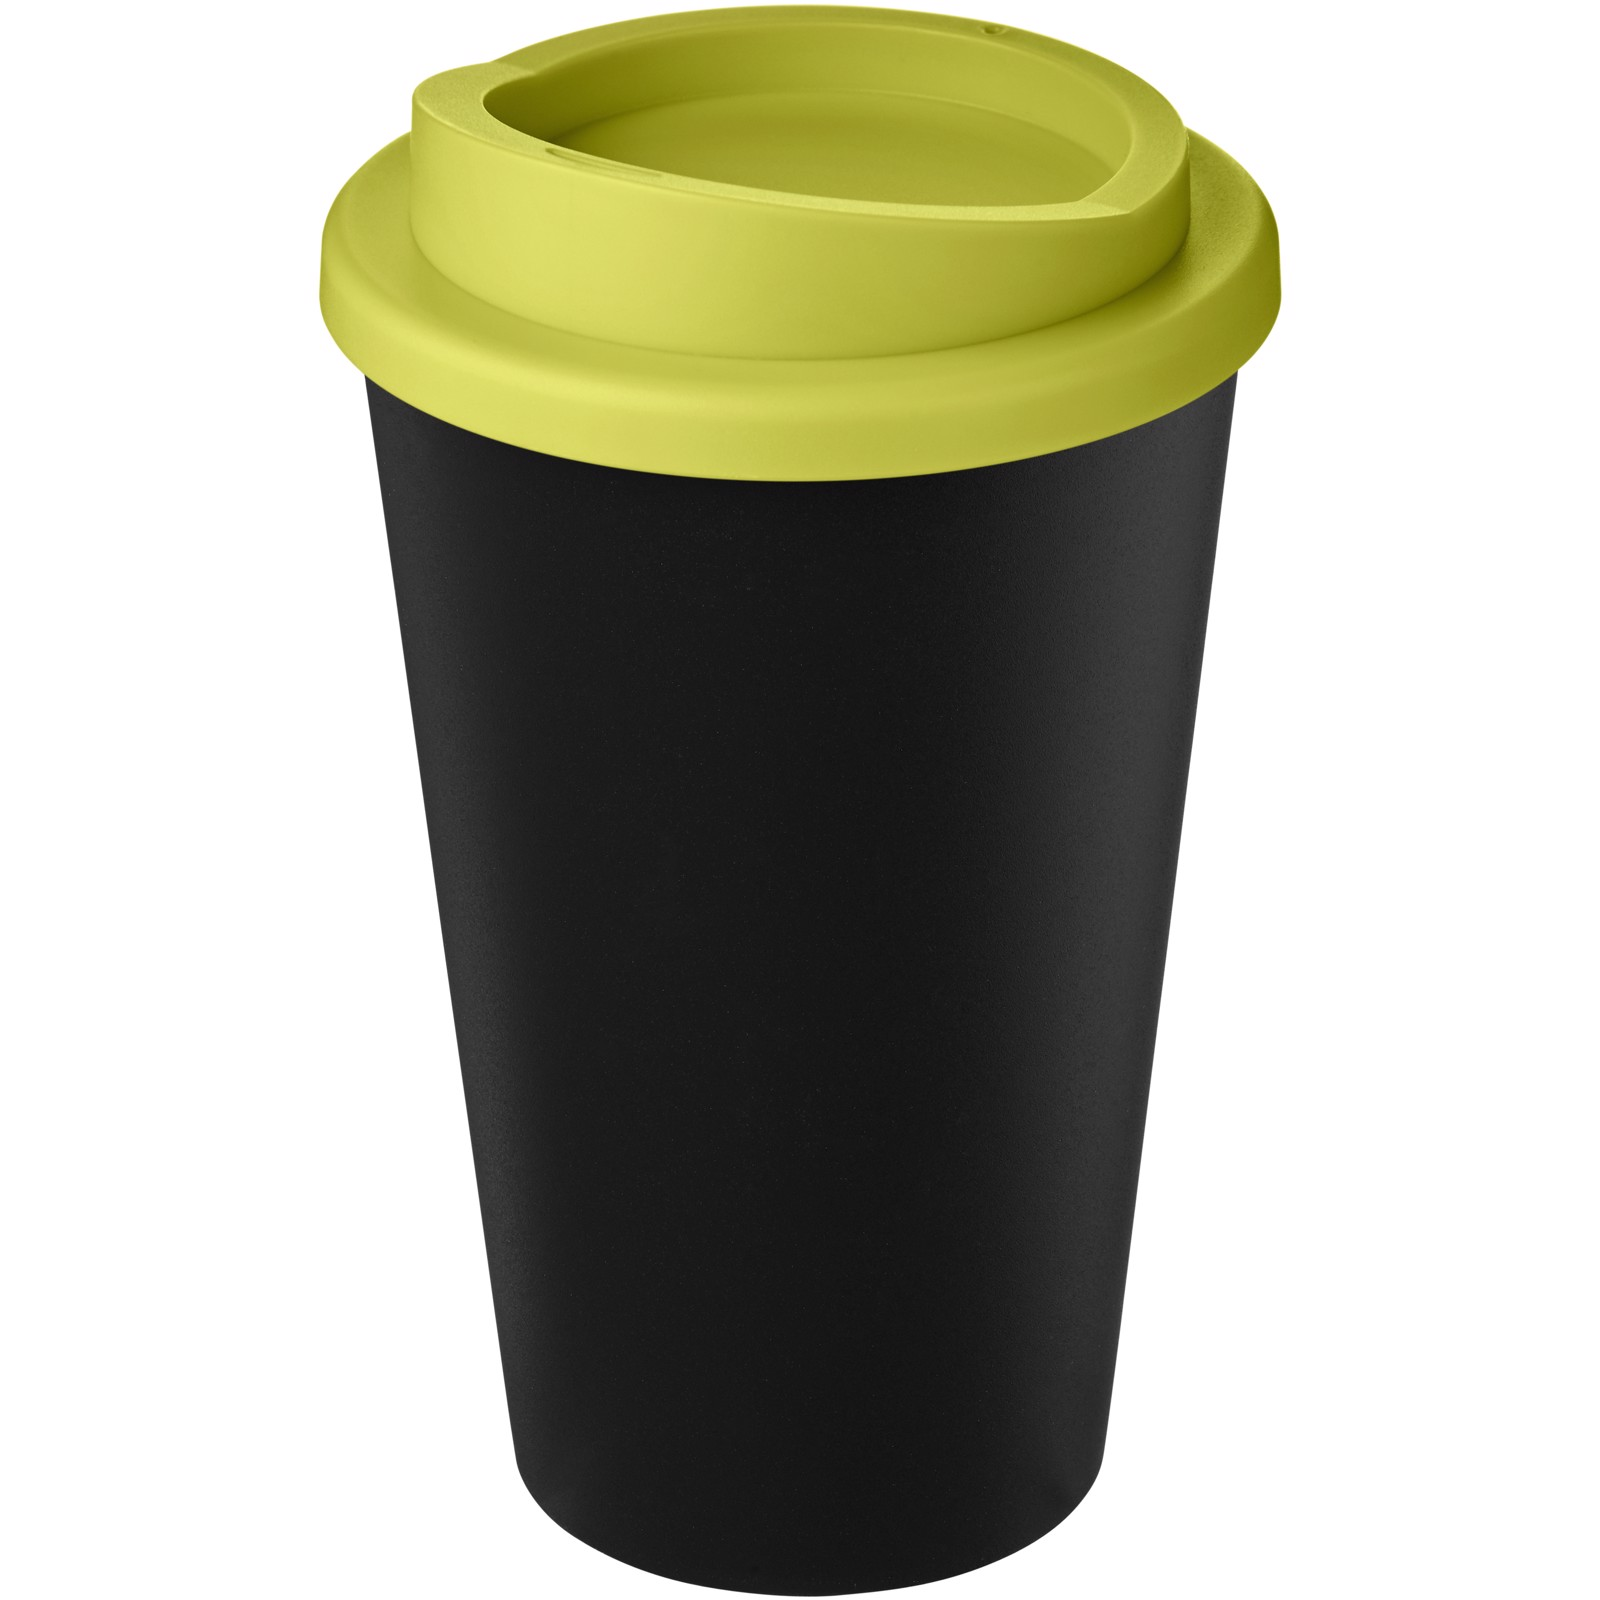 Americano Eco 350 ml recycled tumbler - Solid black / Lime